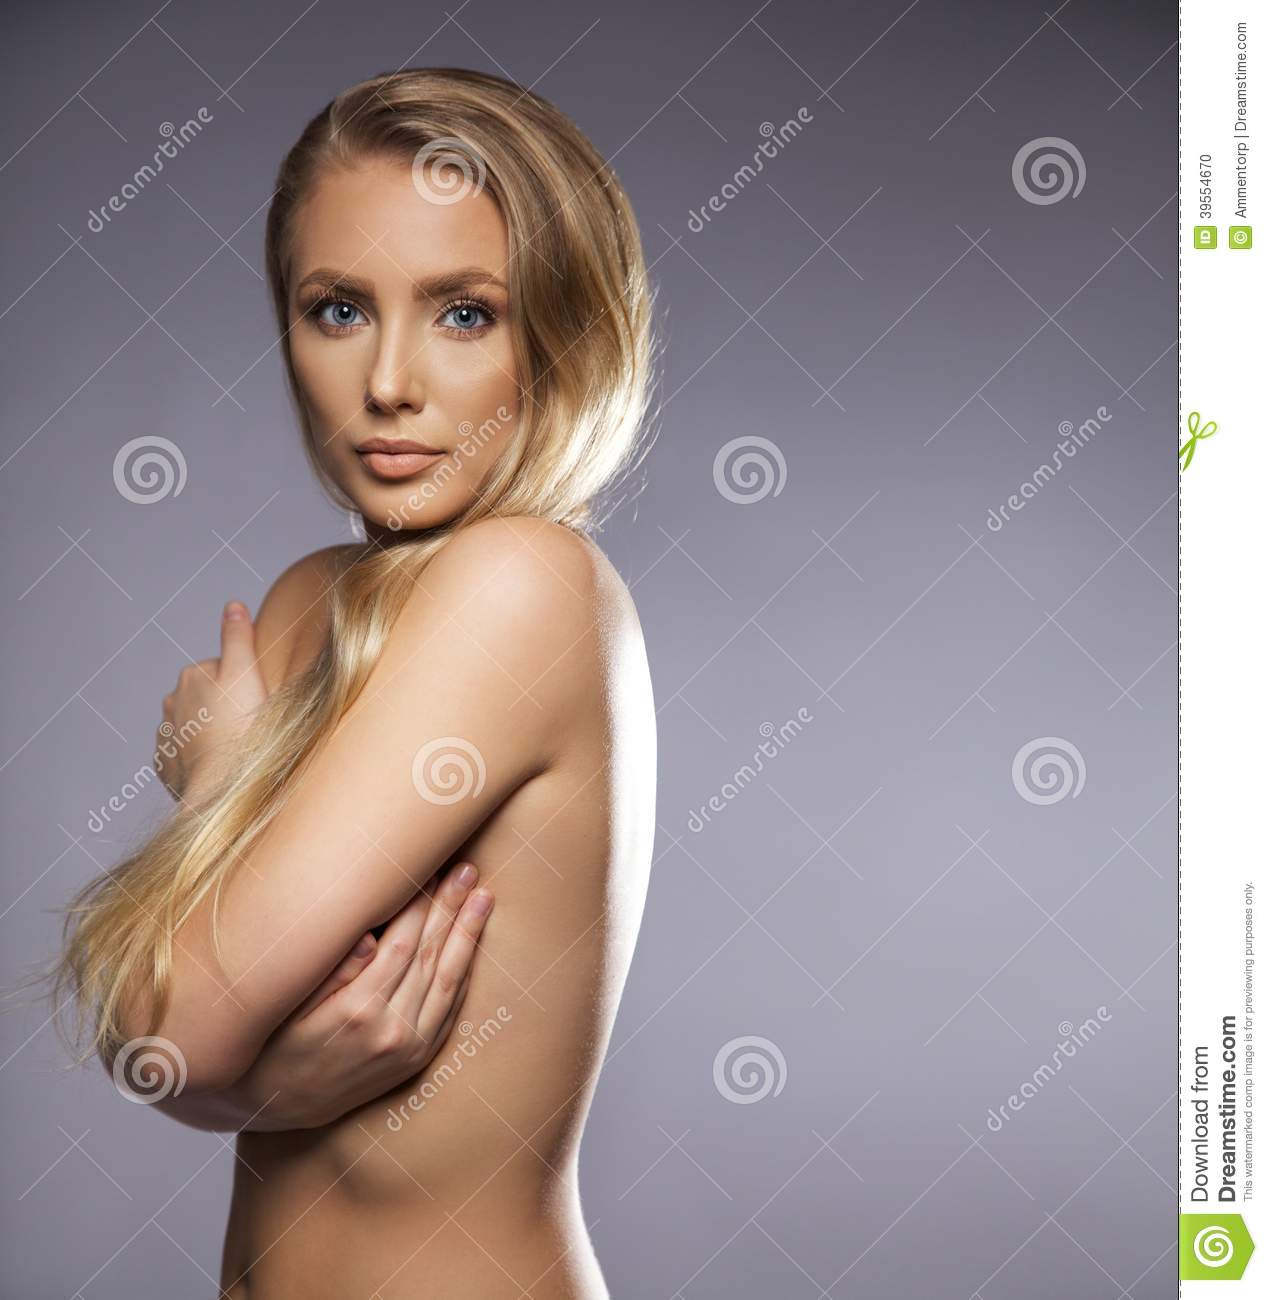 nude girl covering body